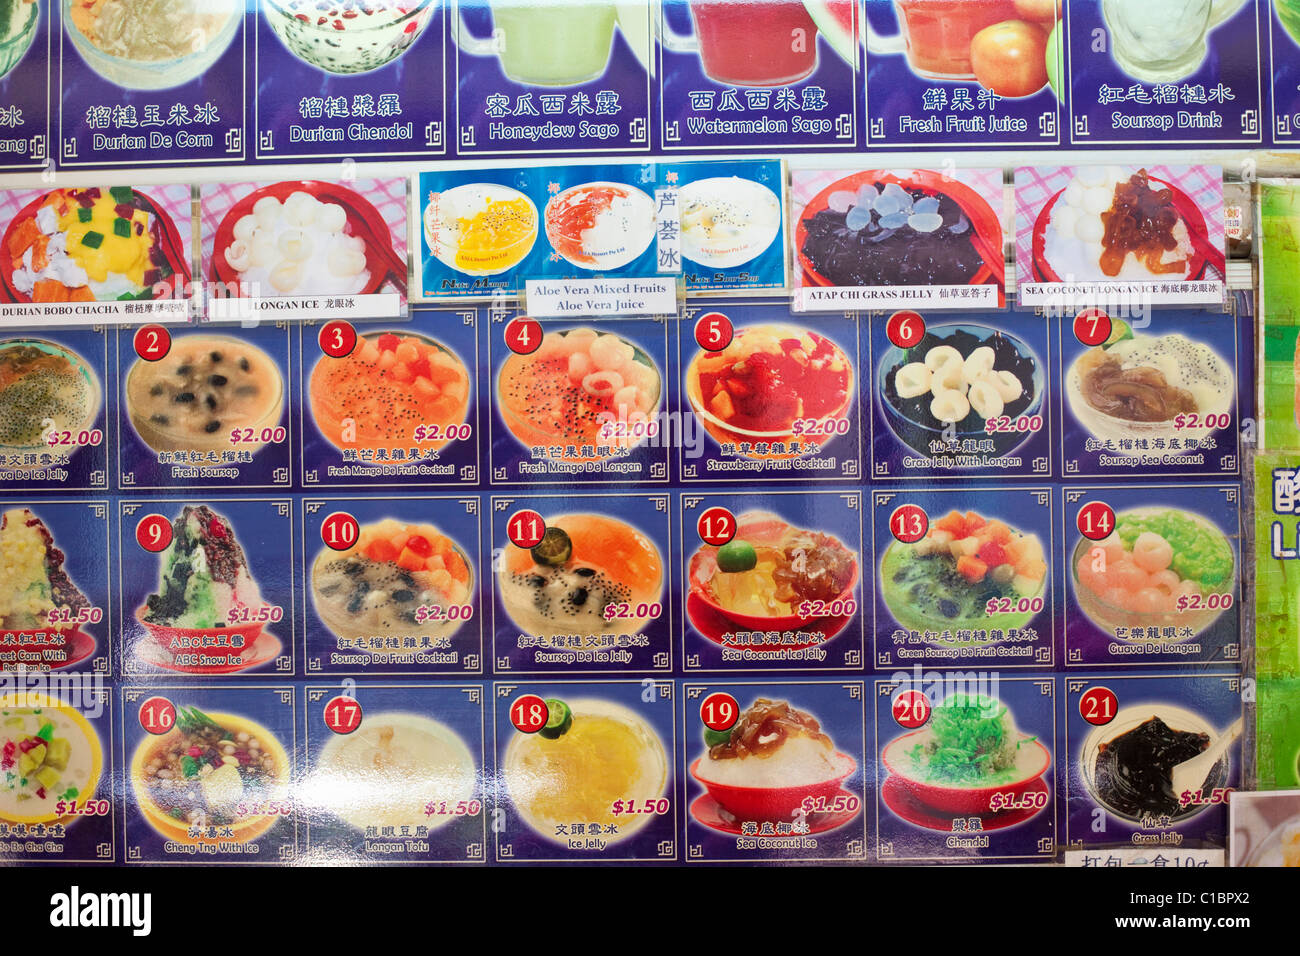 singapore chinese dessert stock photos & singapore chinese dessert